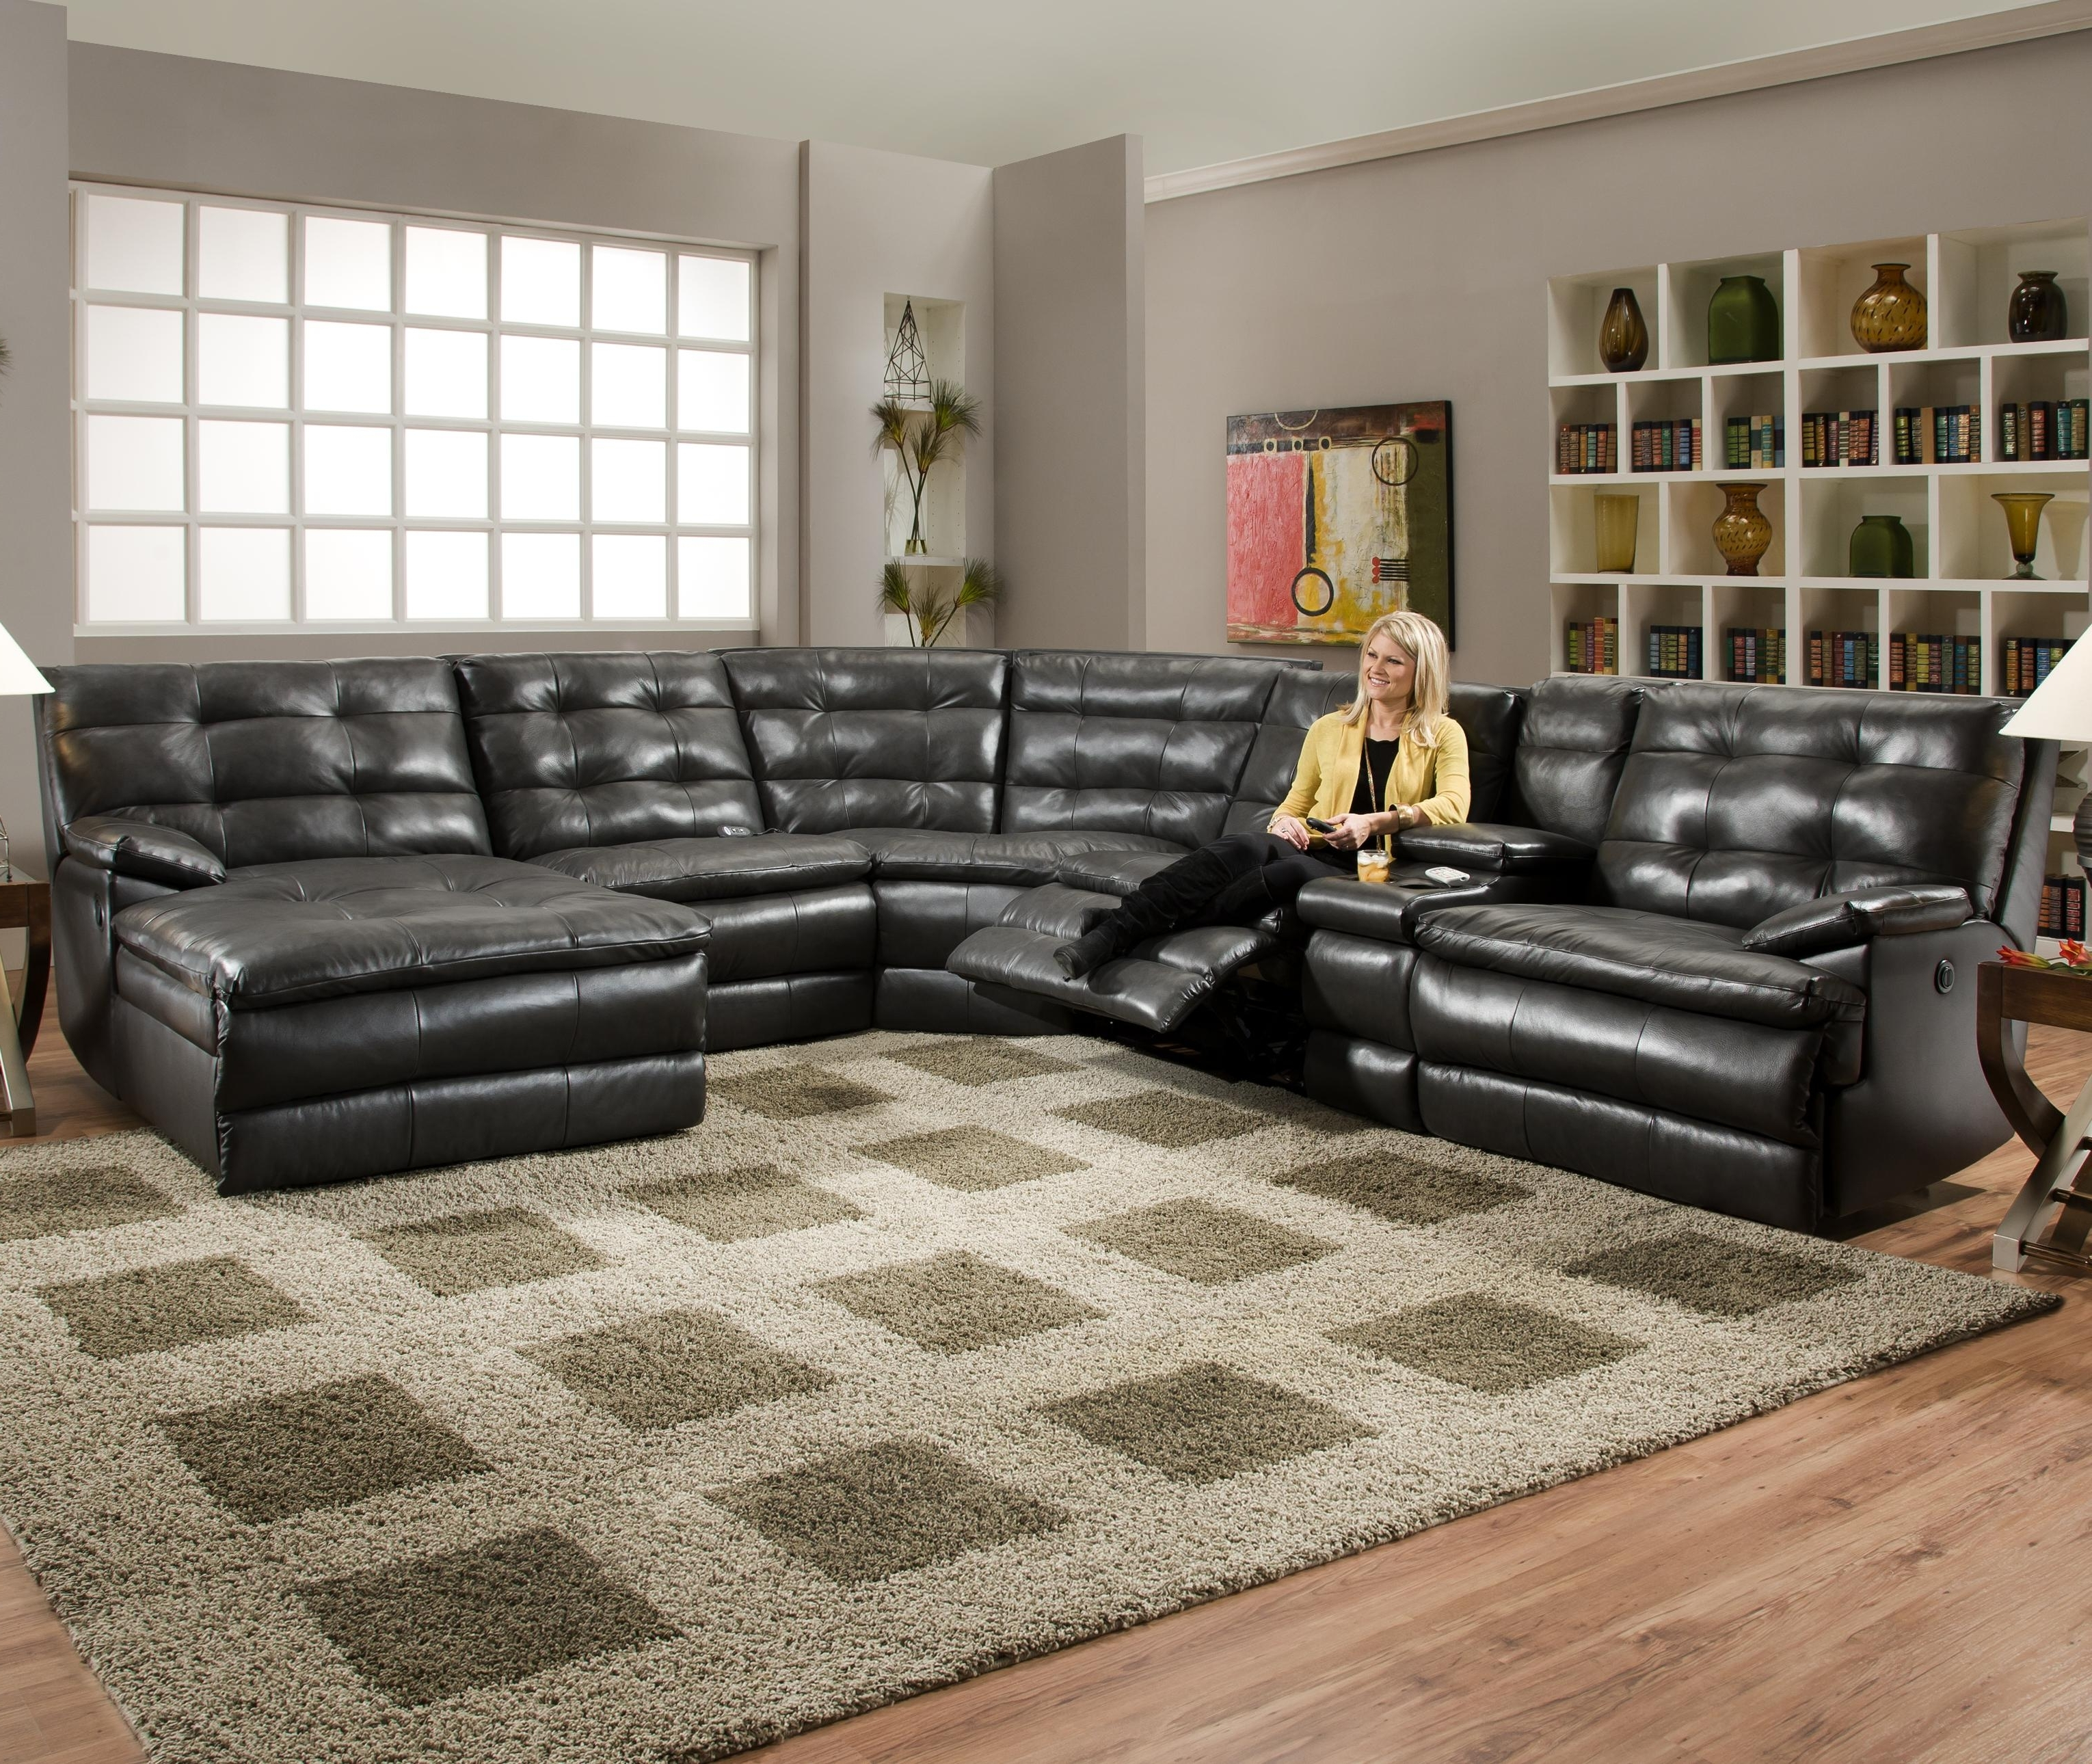 Widely Used Luxurious Tufted Leather Sectional Sofa In Classy Black Color With Within Leather Motion Sectional Sofas (View 15 of 15)